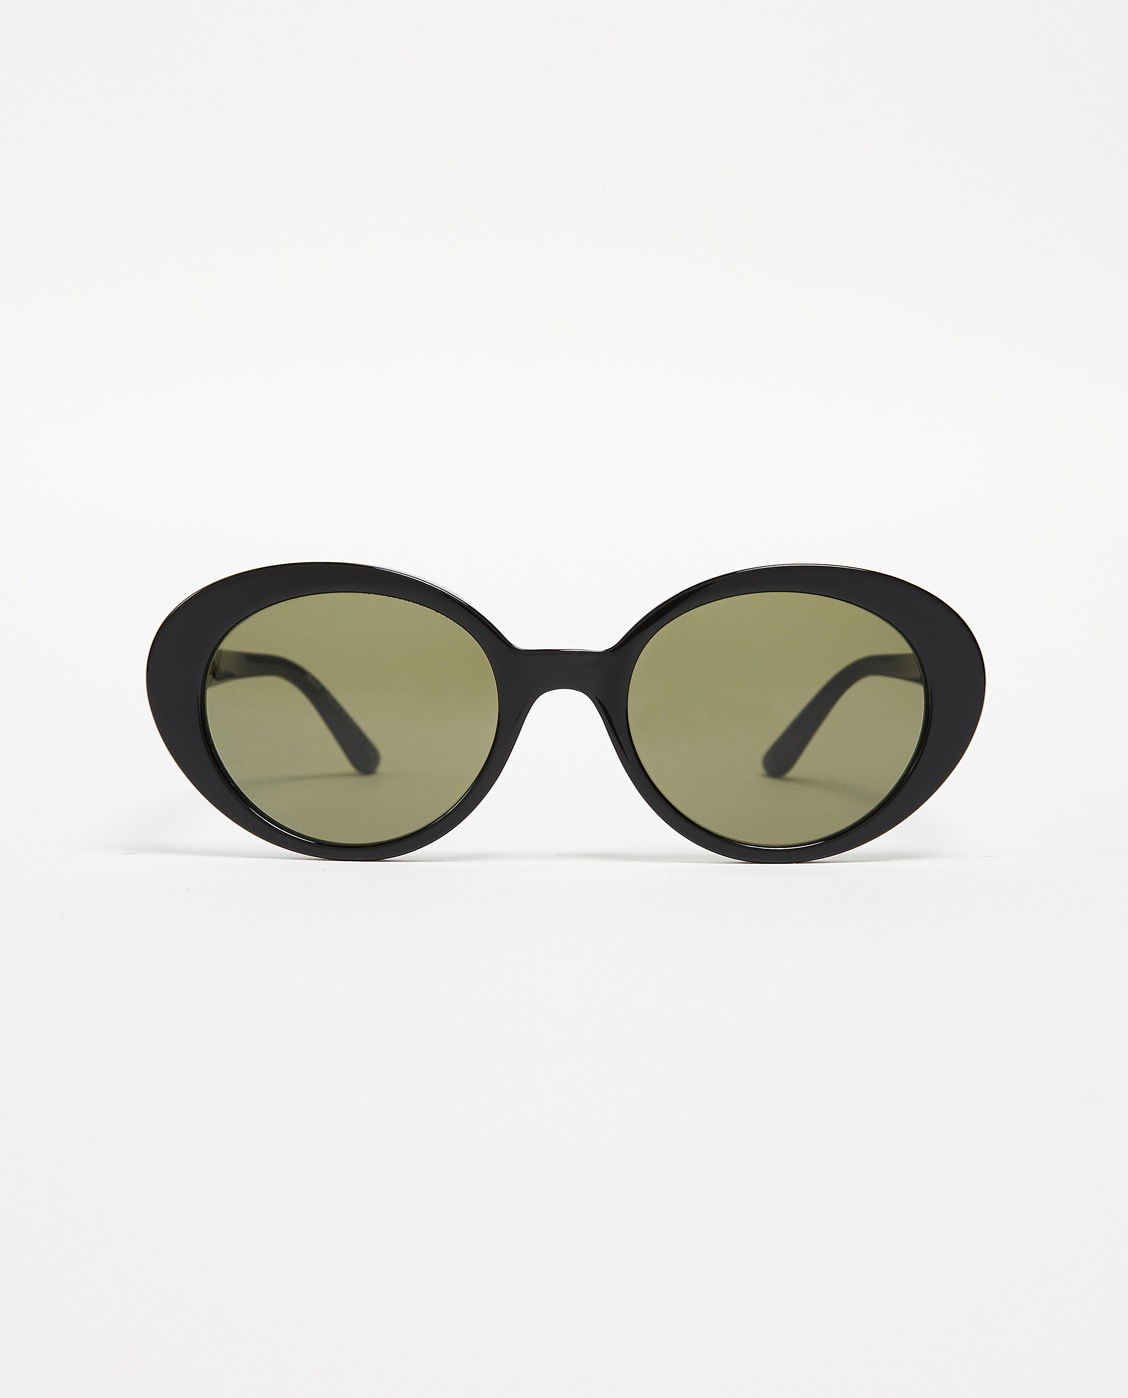 Oliver Peoples The Row Parquet Sunglasses Black Jackie O.